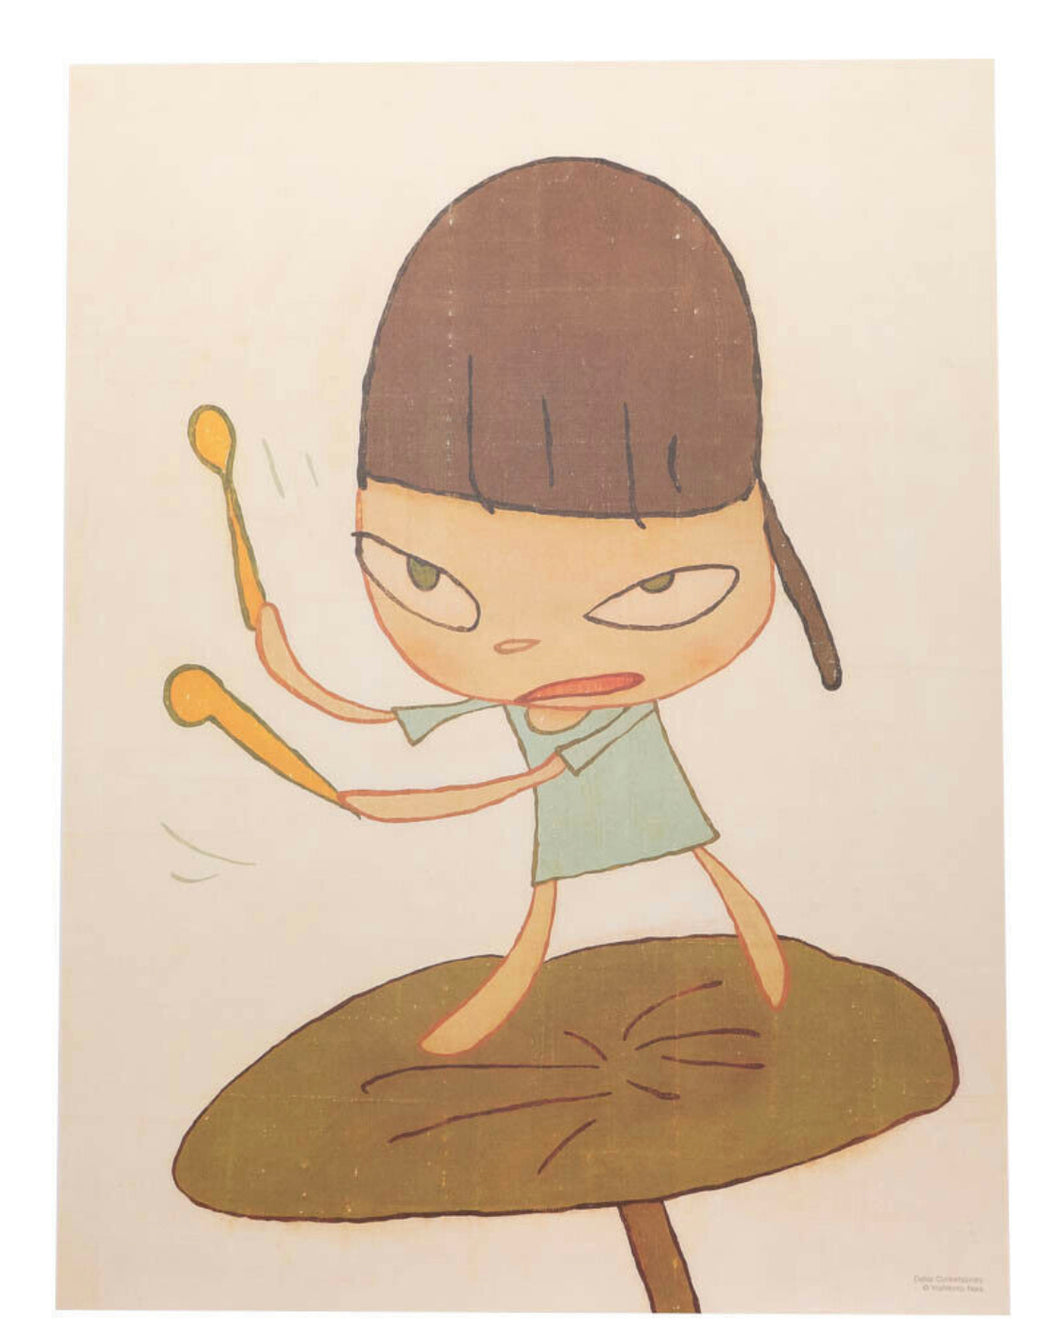 Yoshitomo Nara 'Marching on a Butterbur Leaf'